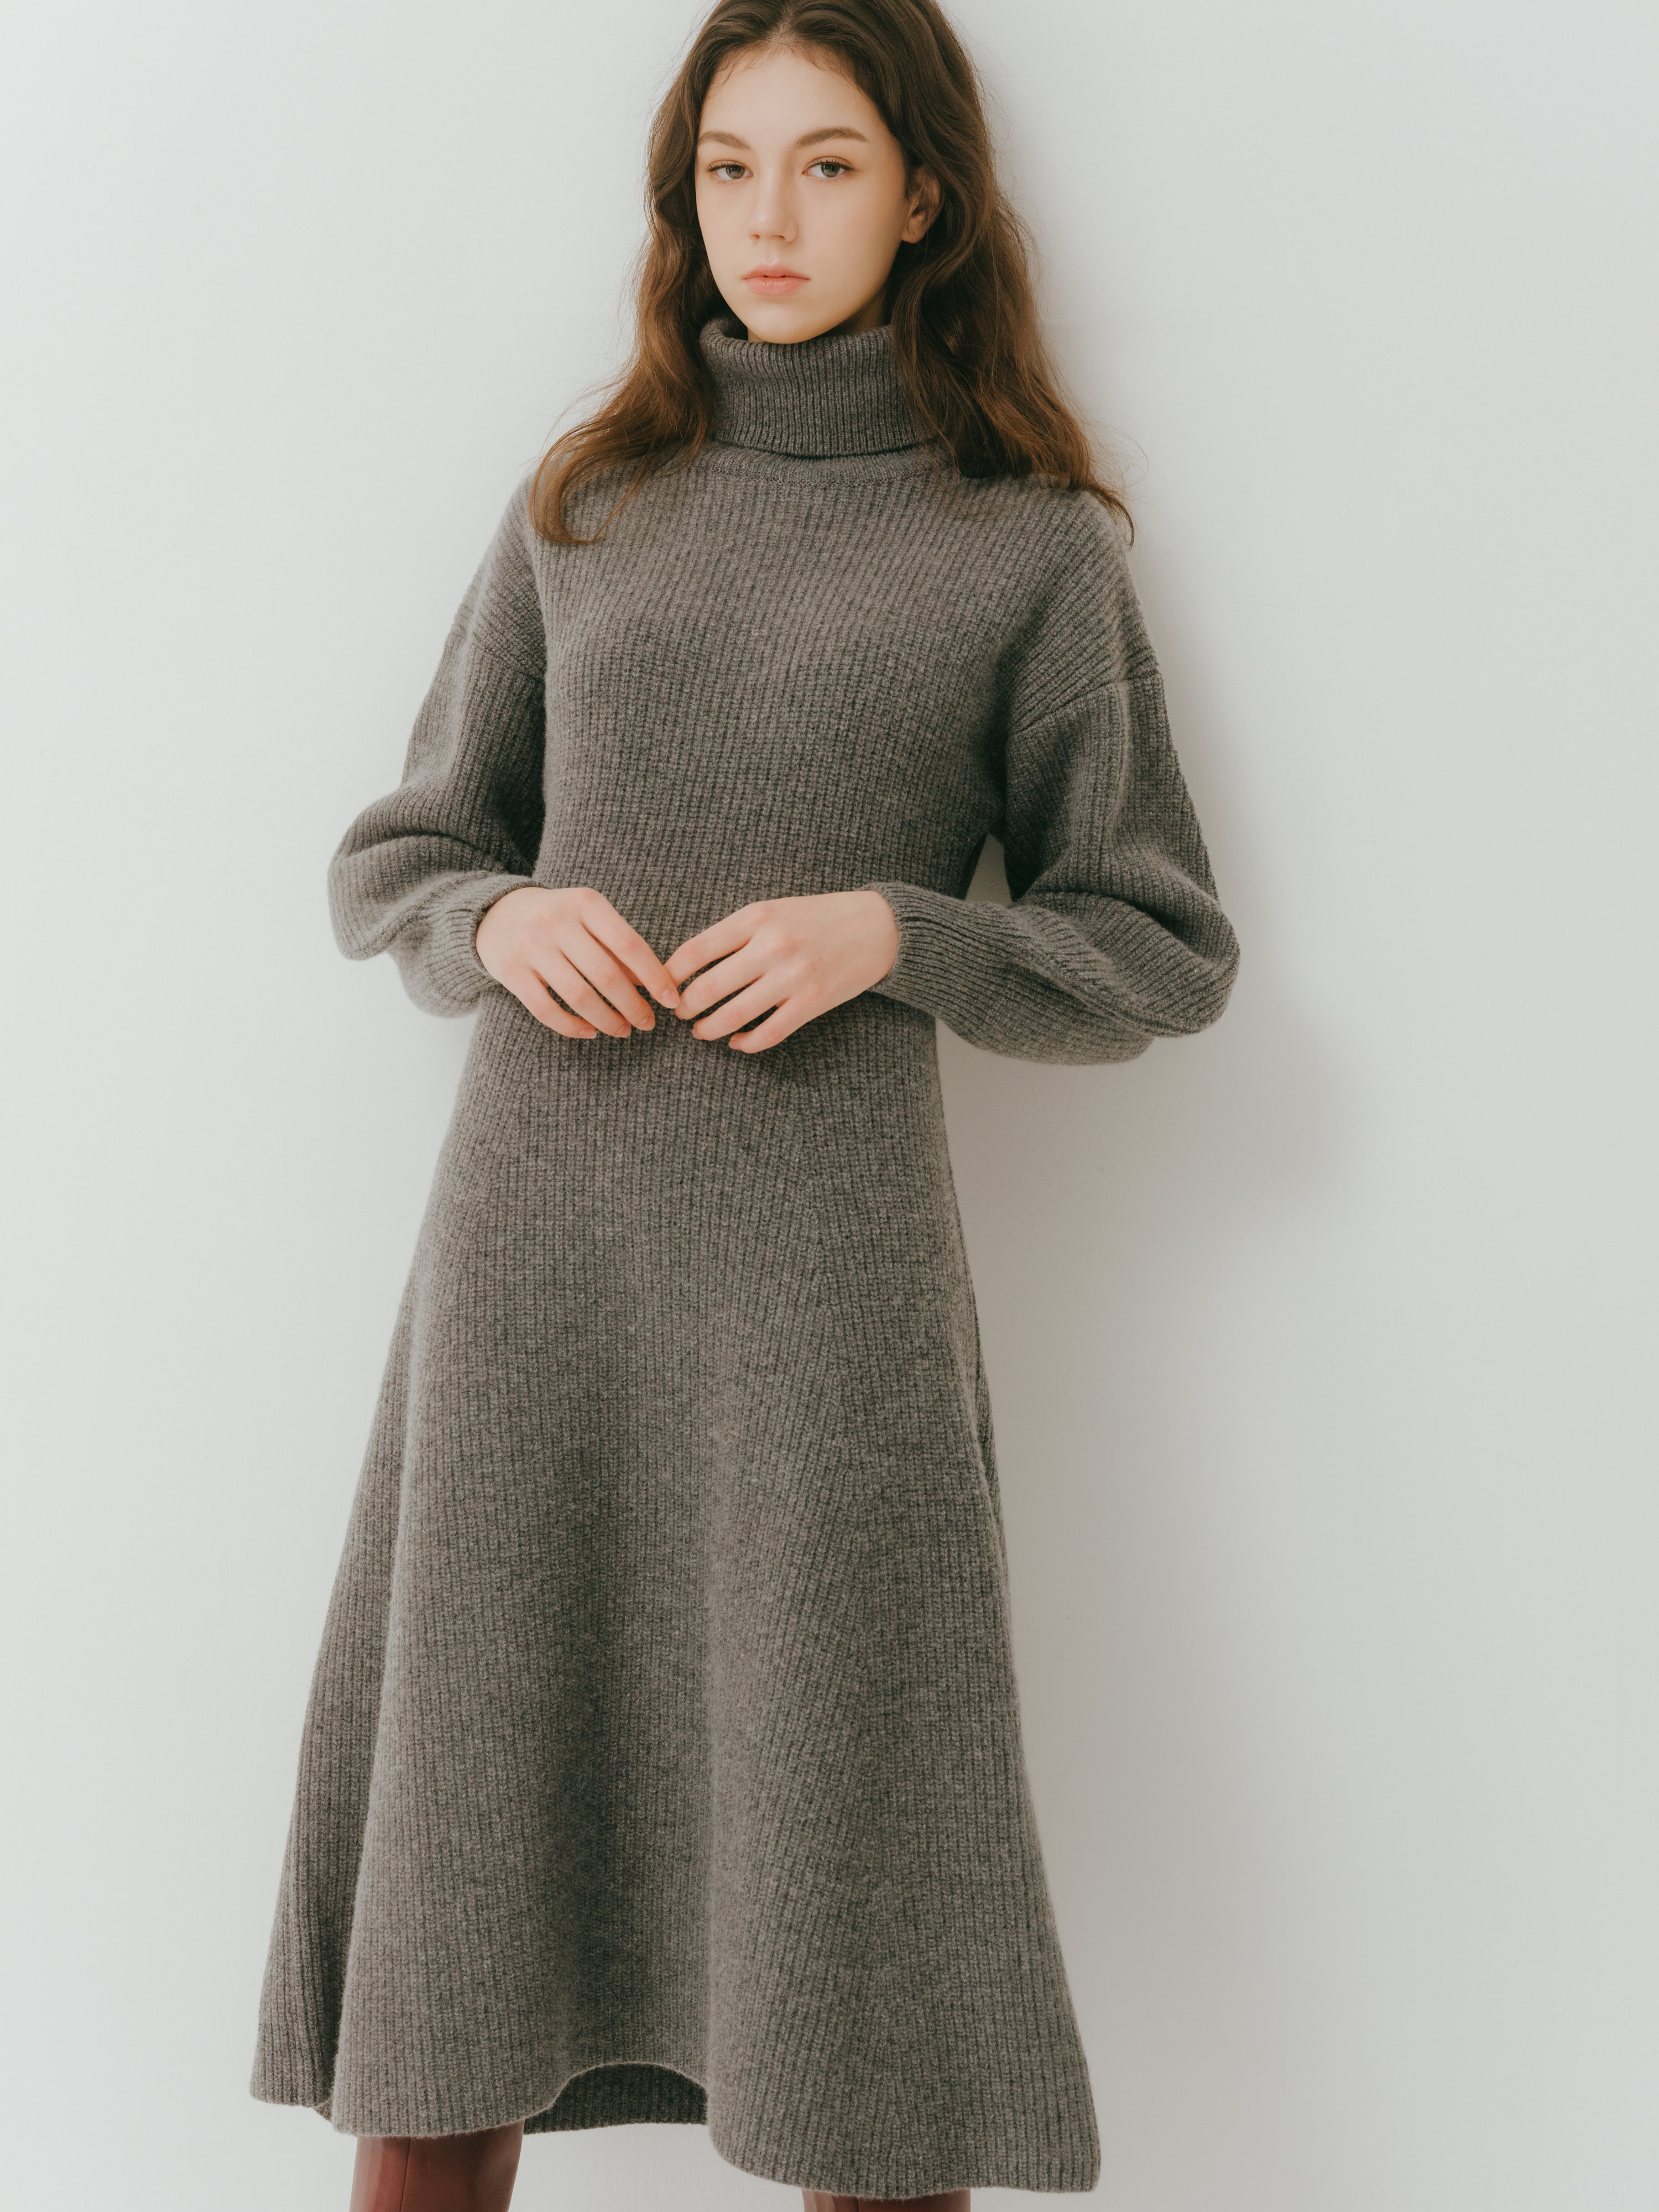 Ribre dress(Gray) 2차 입고